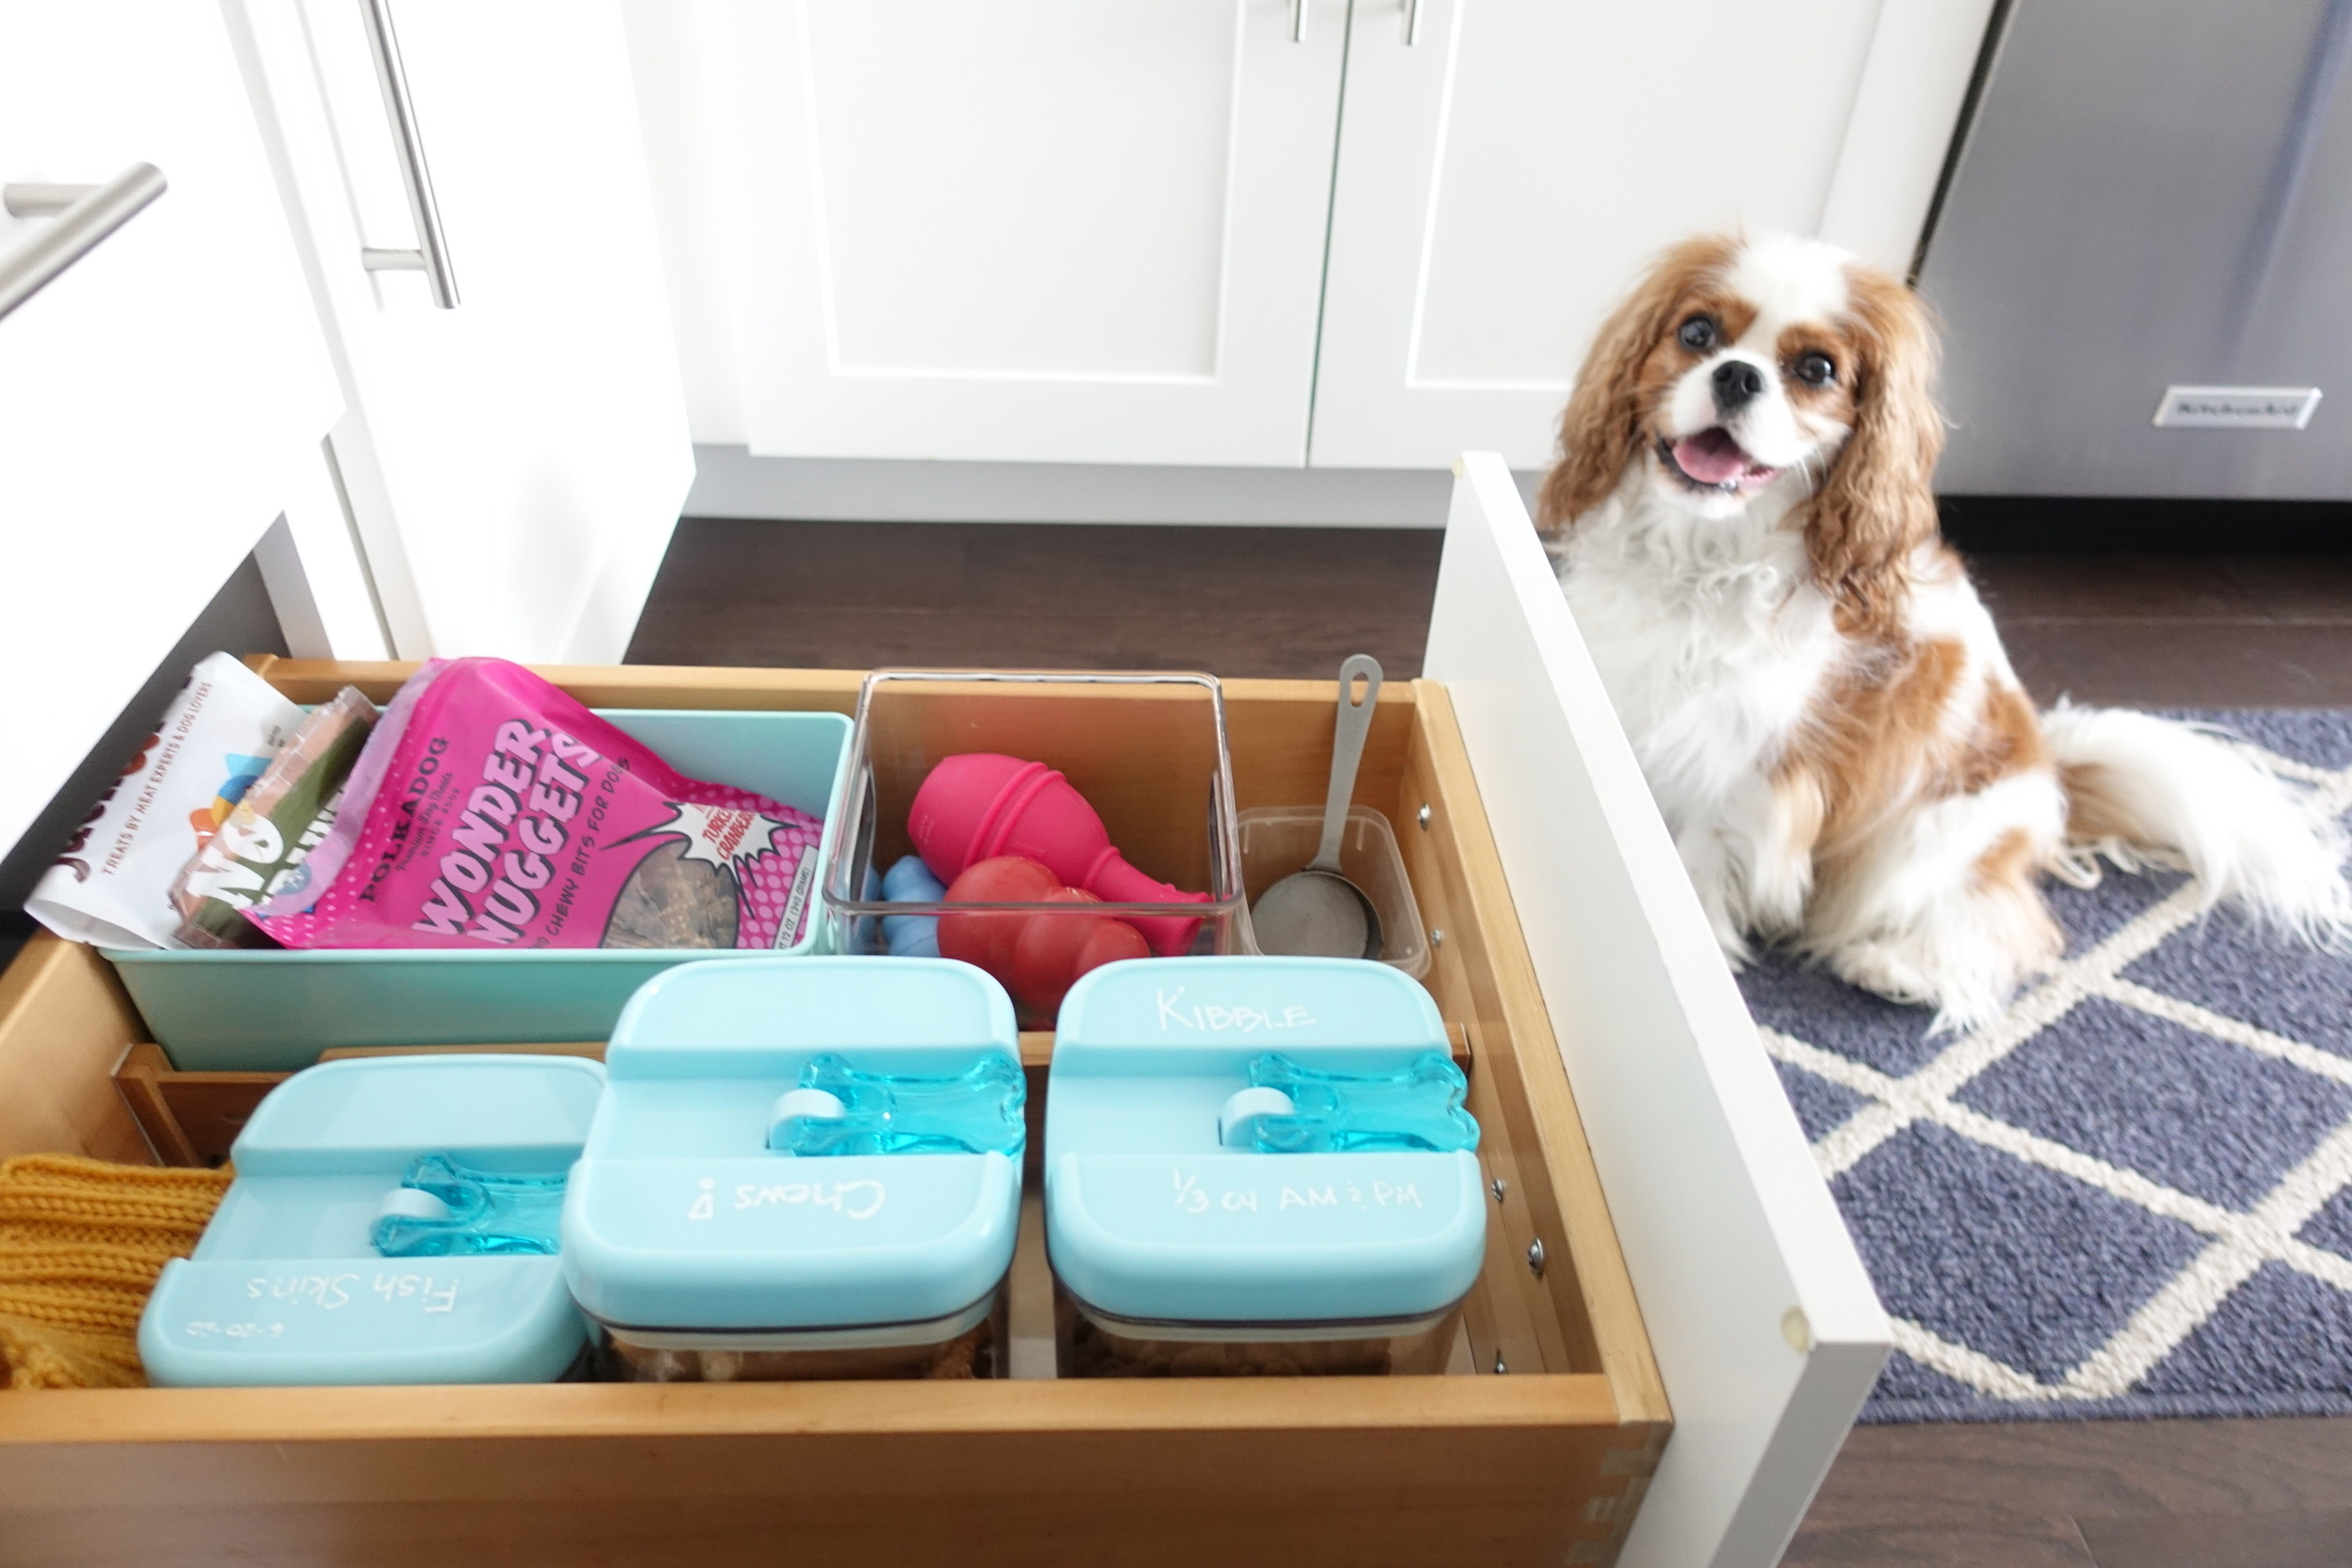 A dog sitting next to a drawer of dog treats, toys, and food